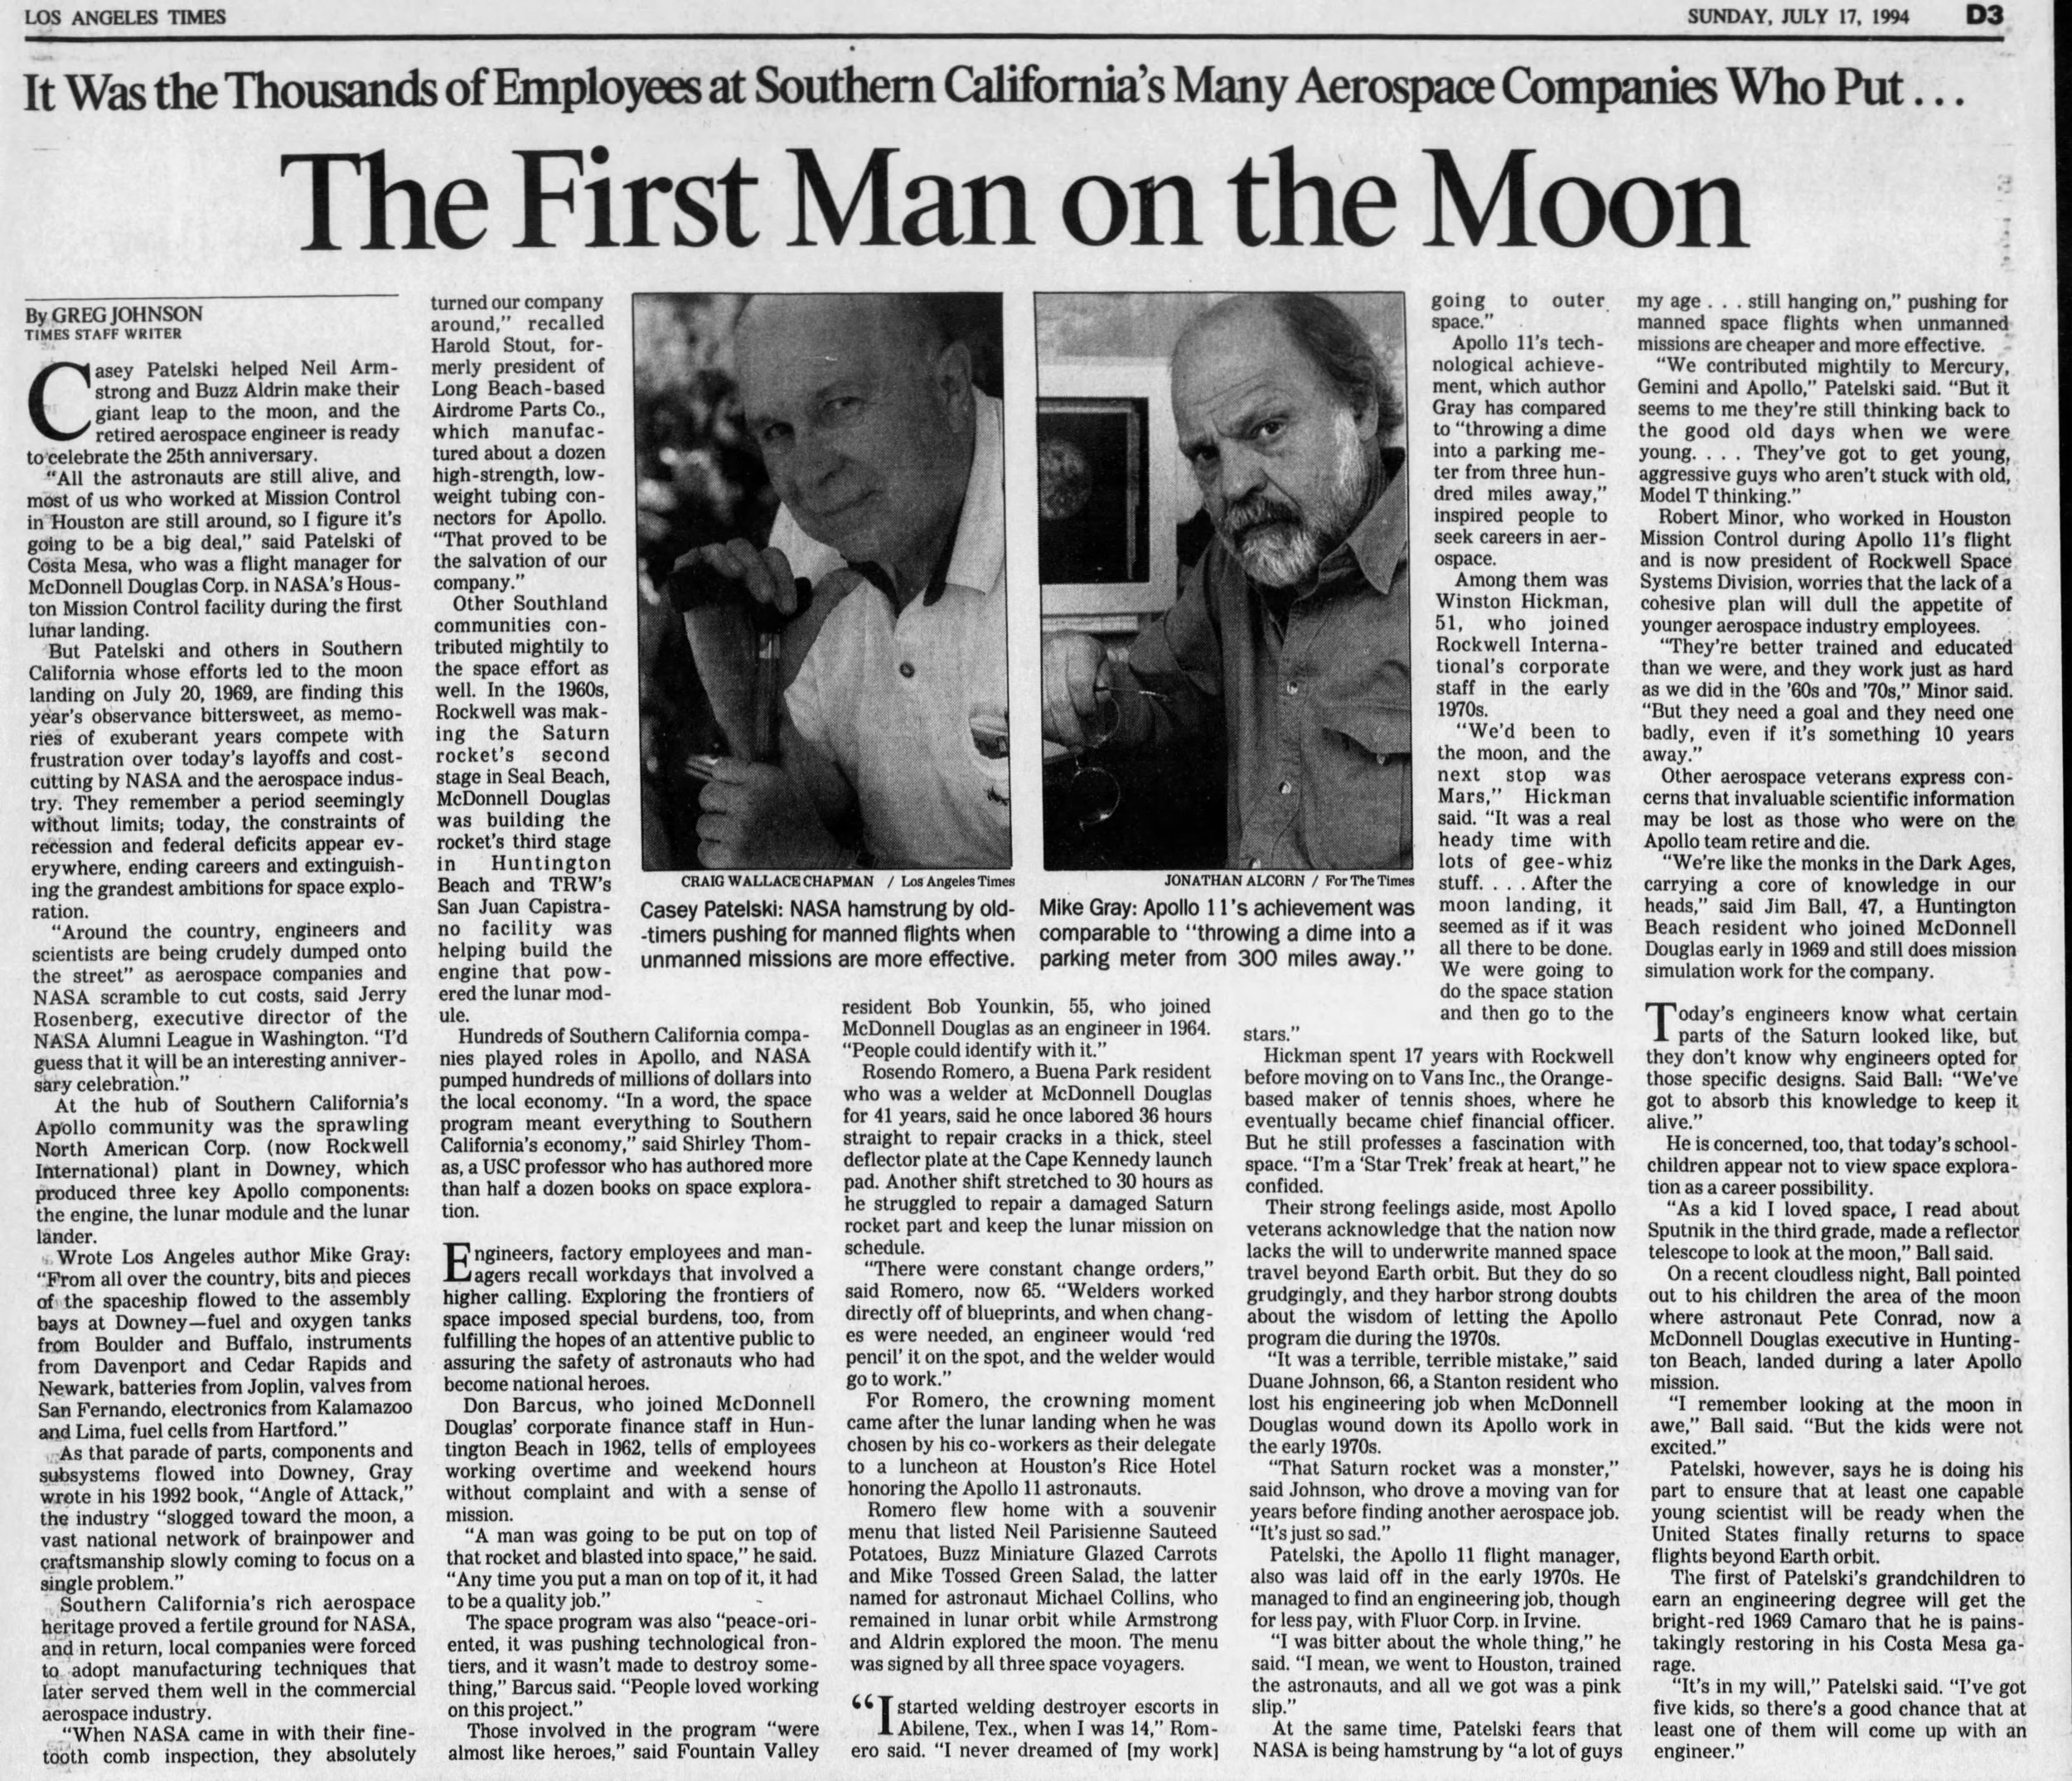 The Los Angeles Times Sun July 17, 1994